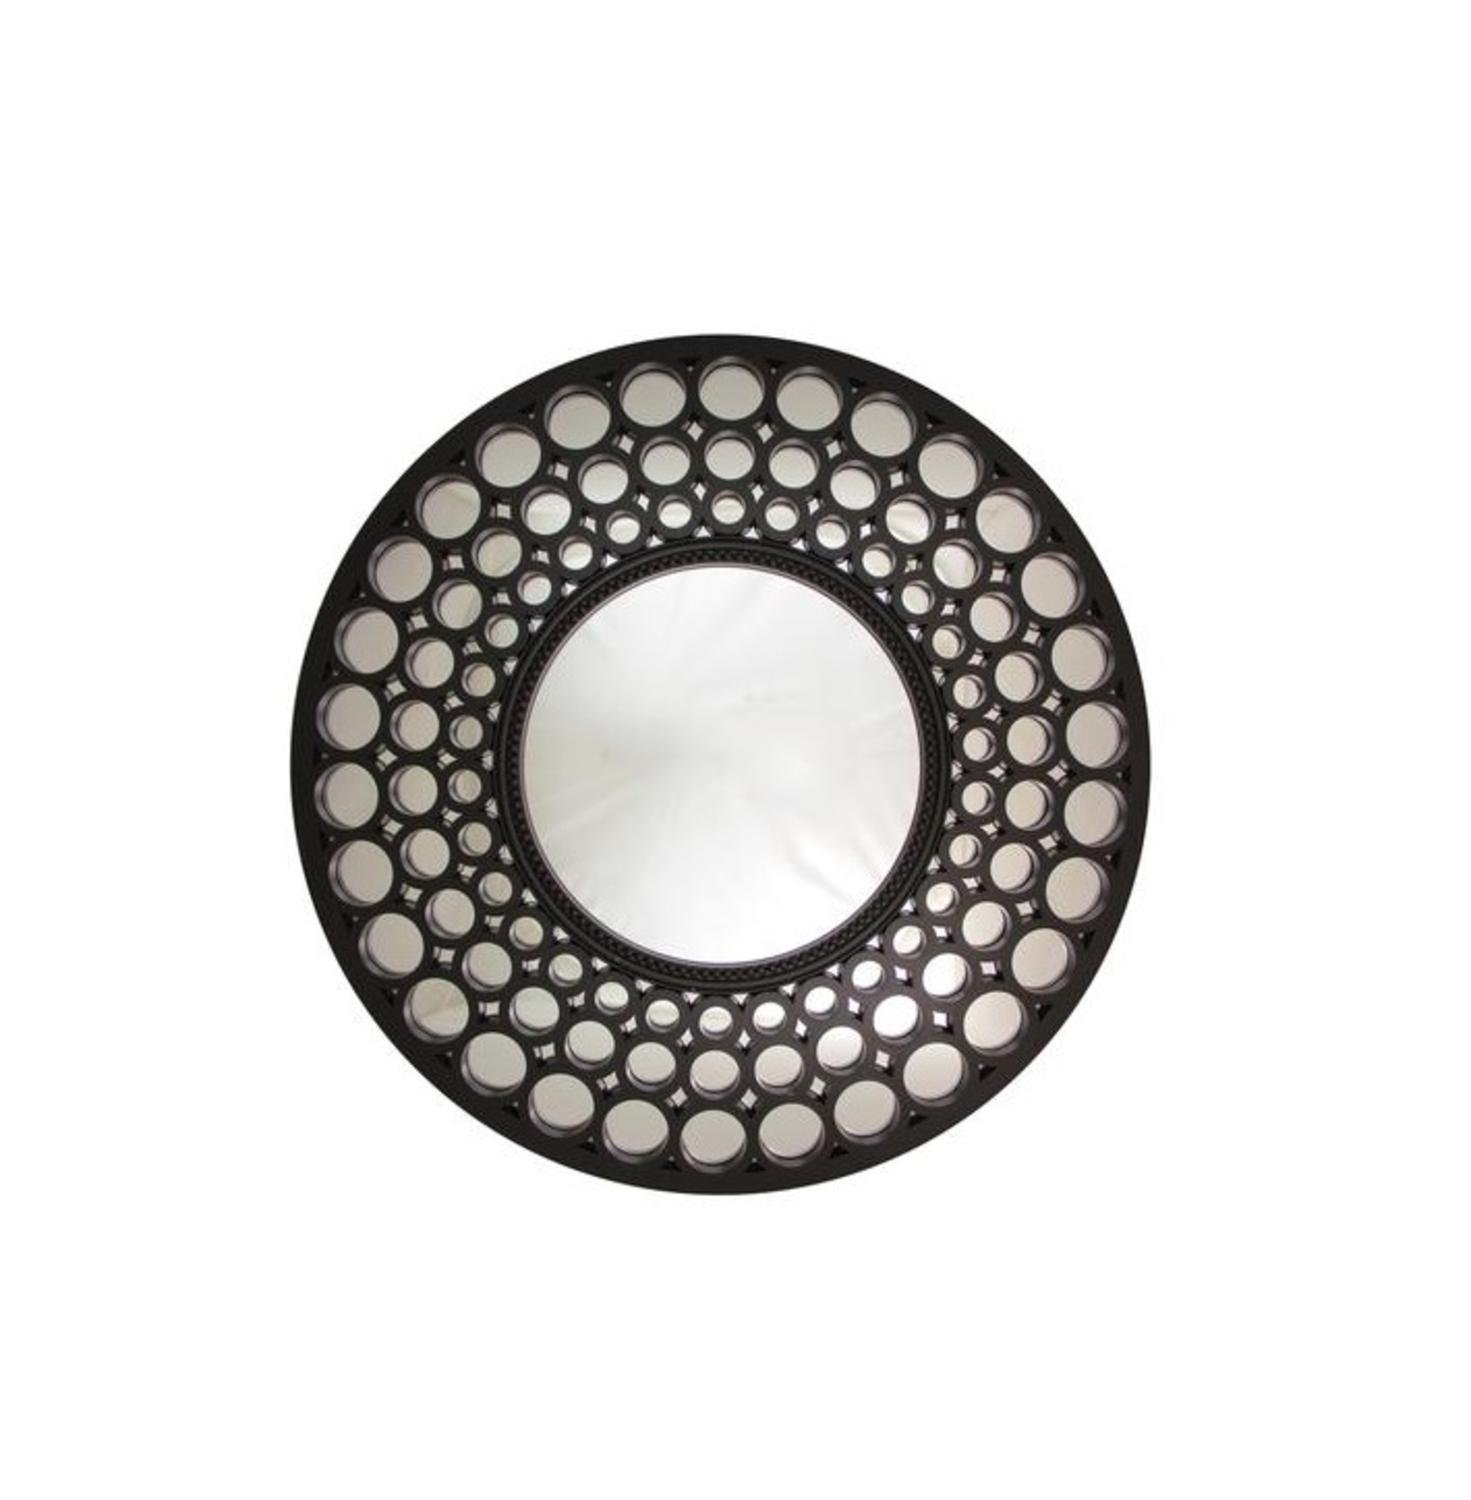 Northlight Glamorous Cascading Orbs Framed Round Wall Mirror, 24.75, White 24.75 NORTHLIGHT YW36893